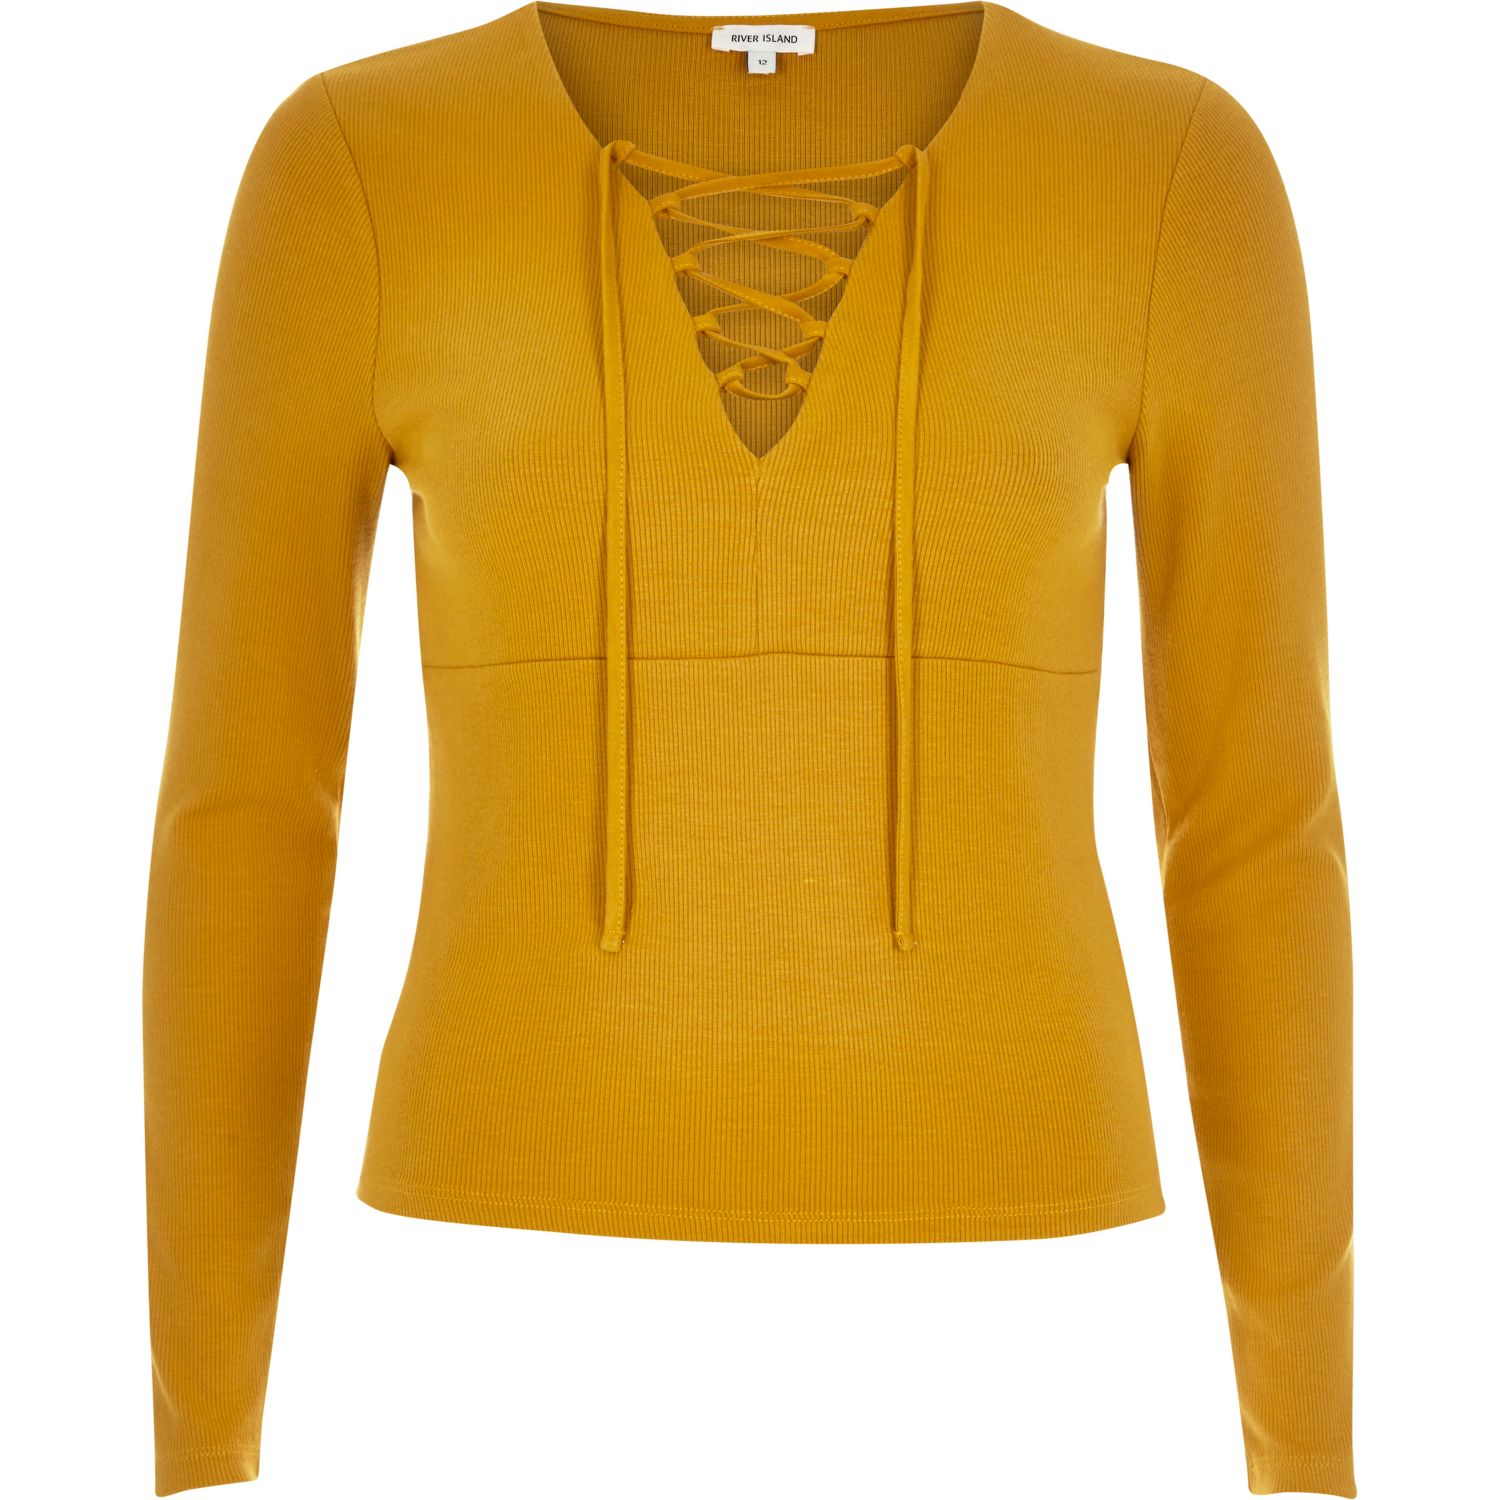 Yellow Blouse Shop Online 74